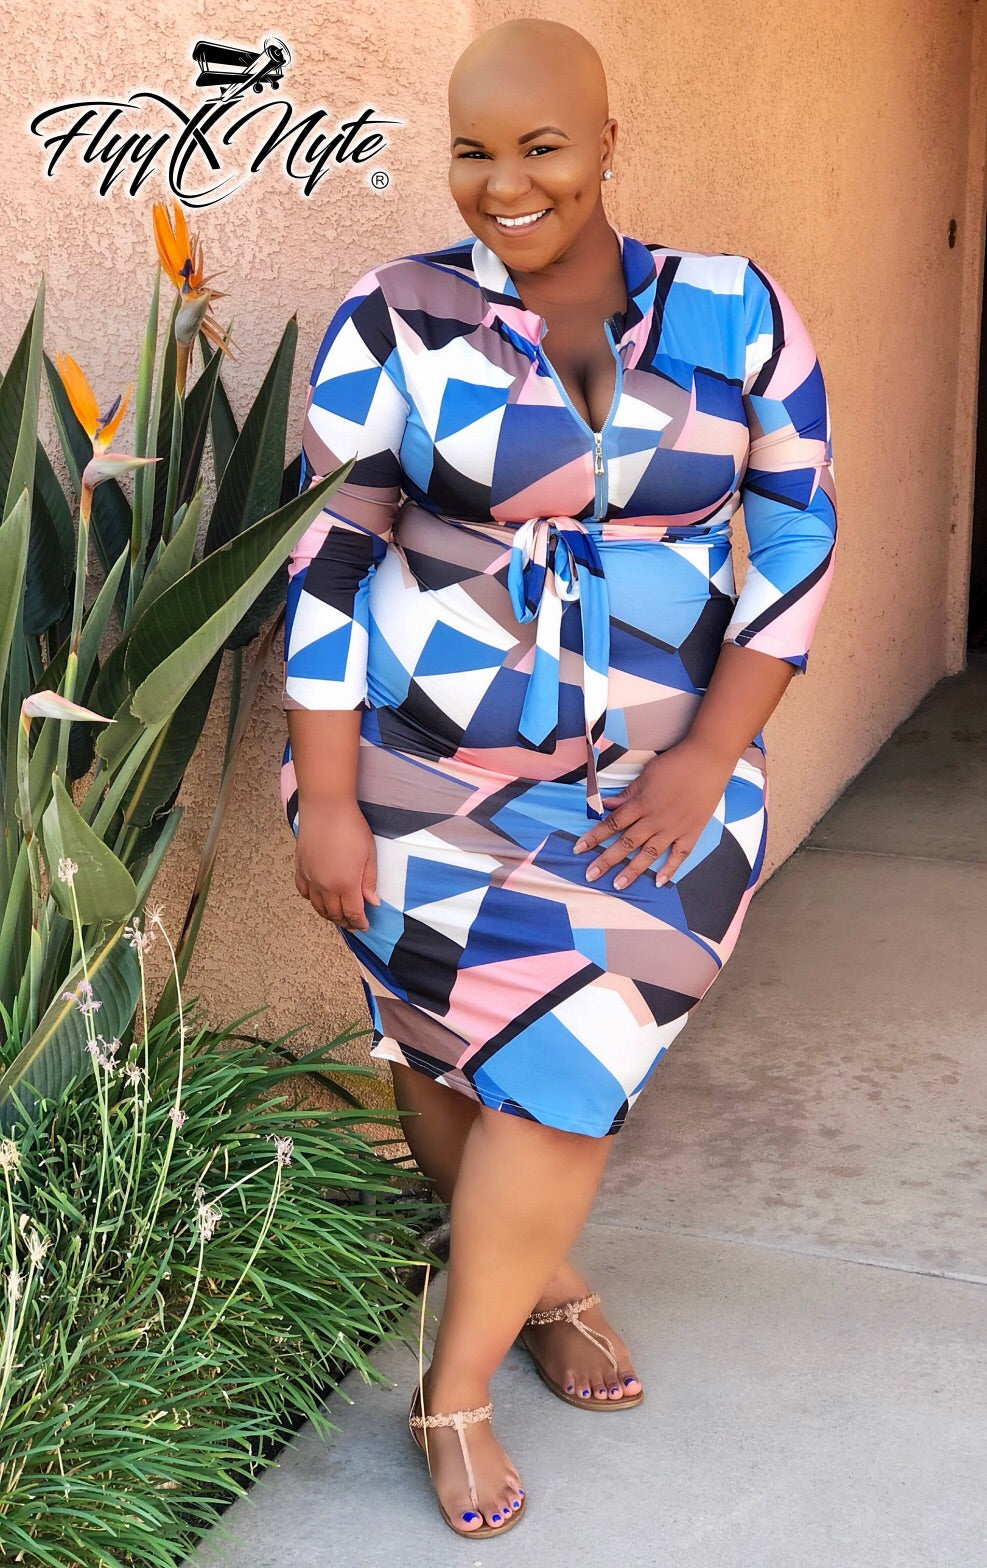 Women's Plus Size 3/4 Sleeve Faux Wrap Midi Dress with Attached Tie In Pink Blue and Light Blue - Flyy By Nyte